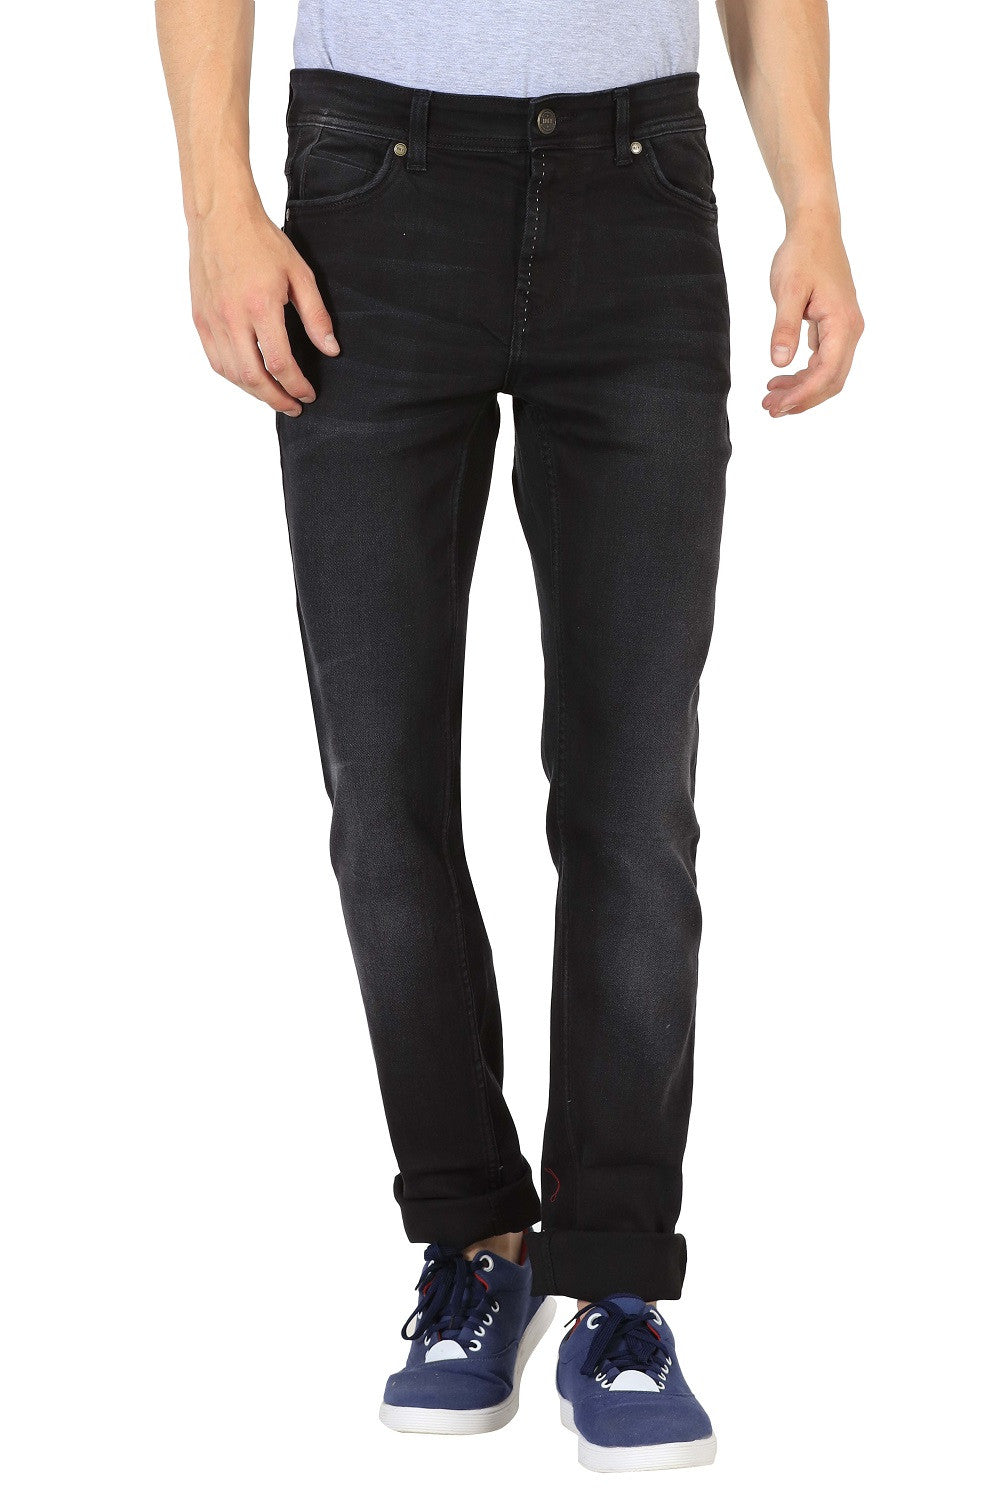 IMYOUNG Jet Black Slim Fit Jeans